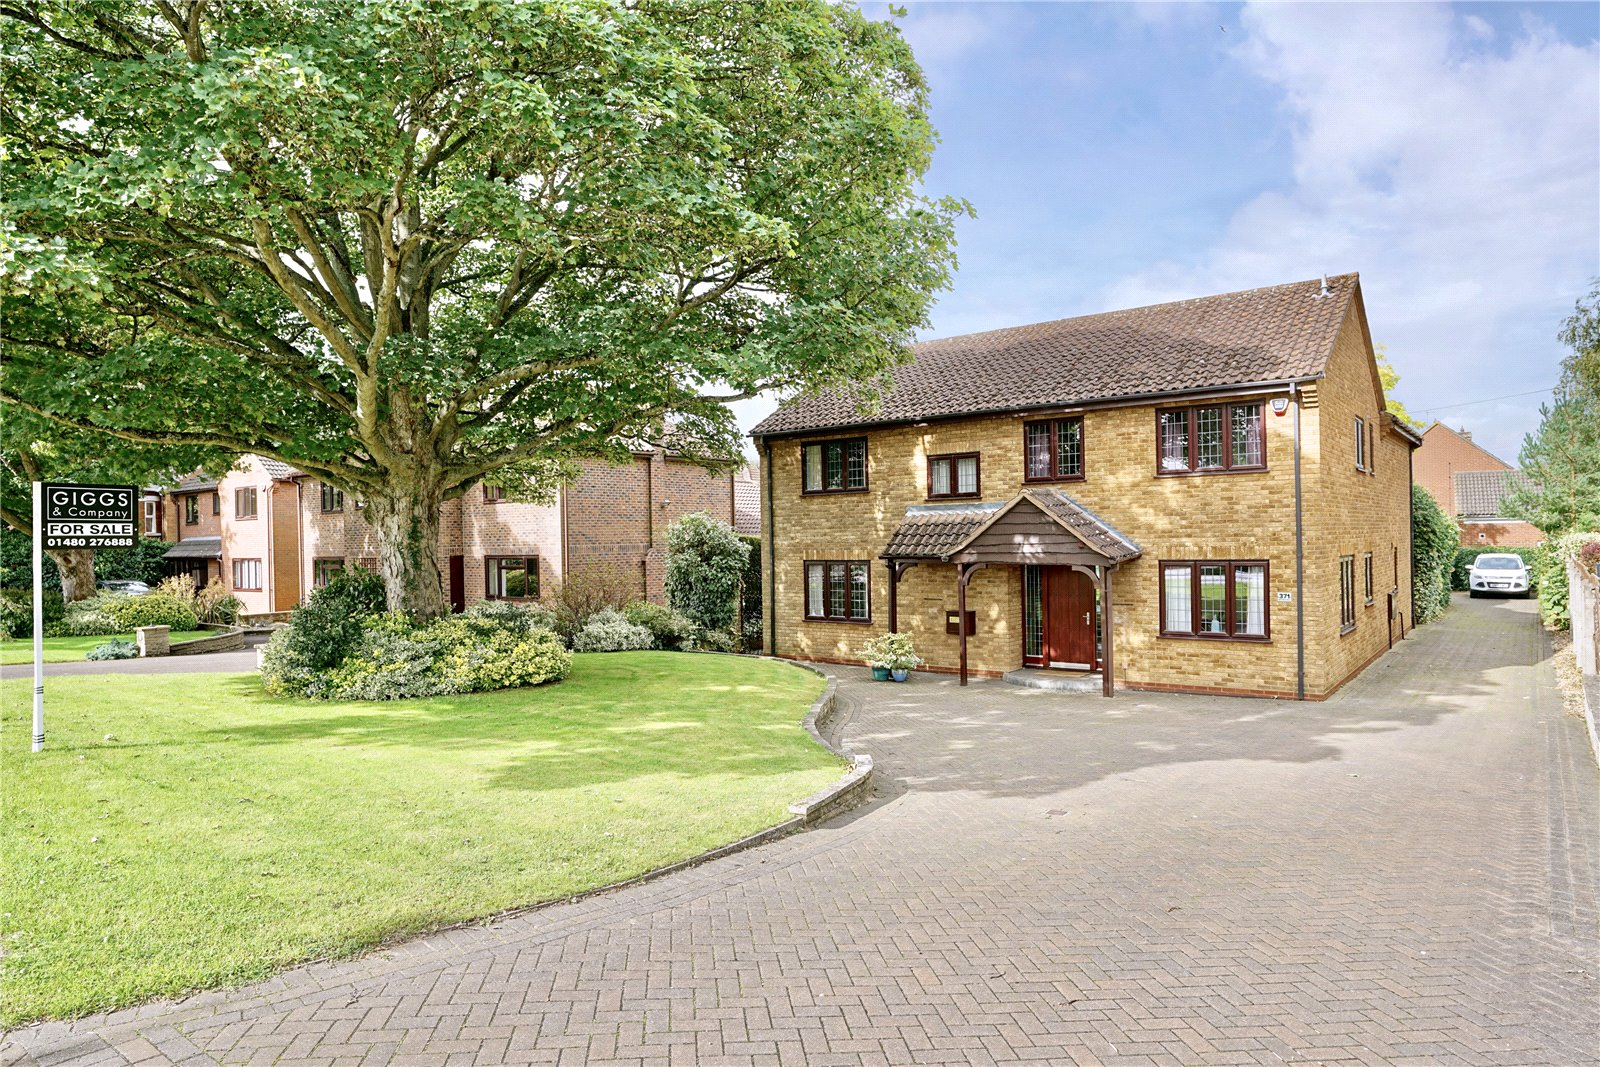 5 bed house for sale in Great North Road, Eaton Ford  - Property Image 1